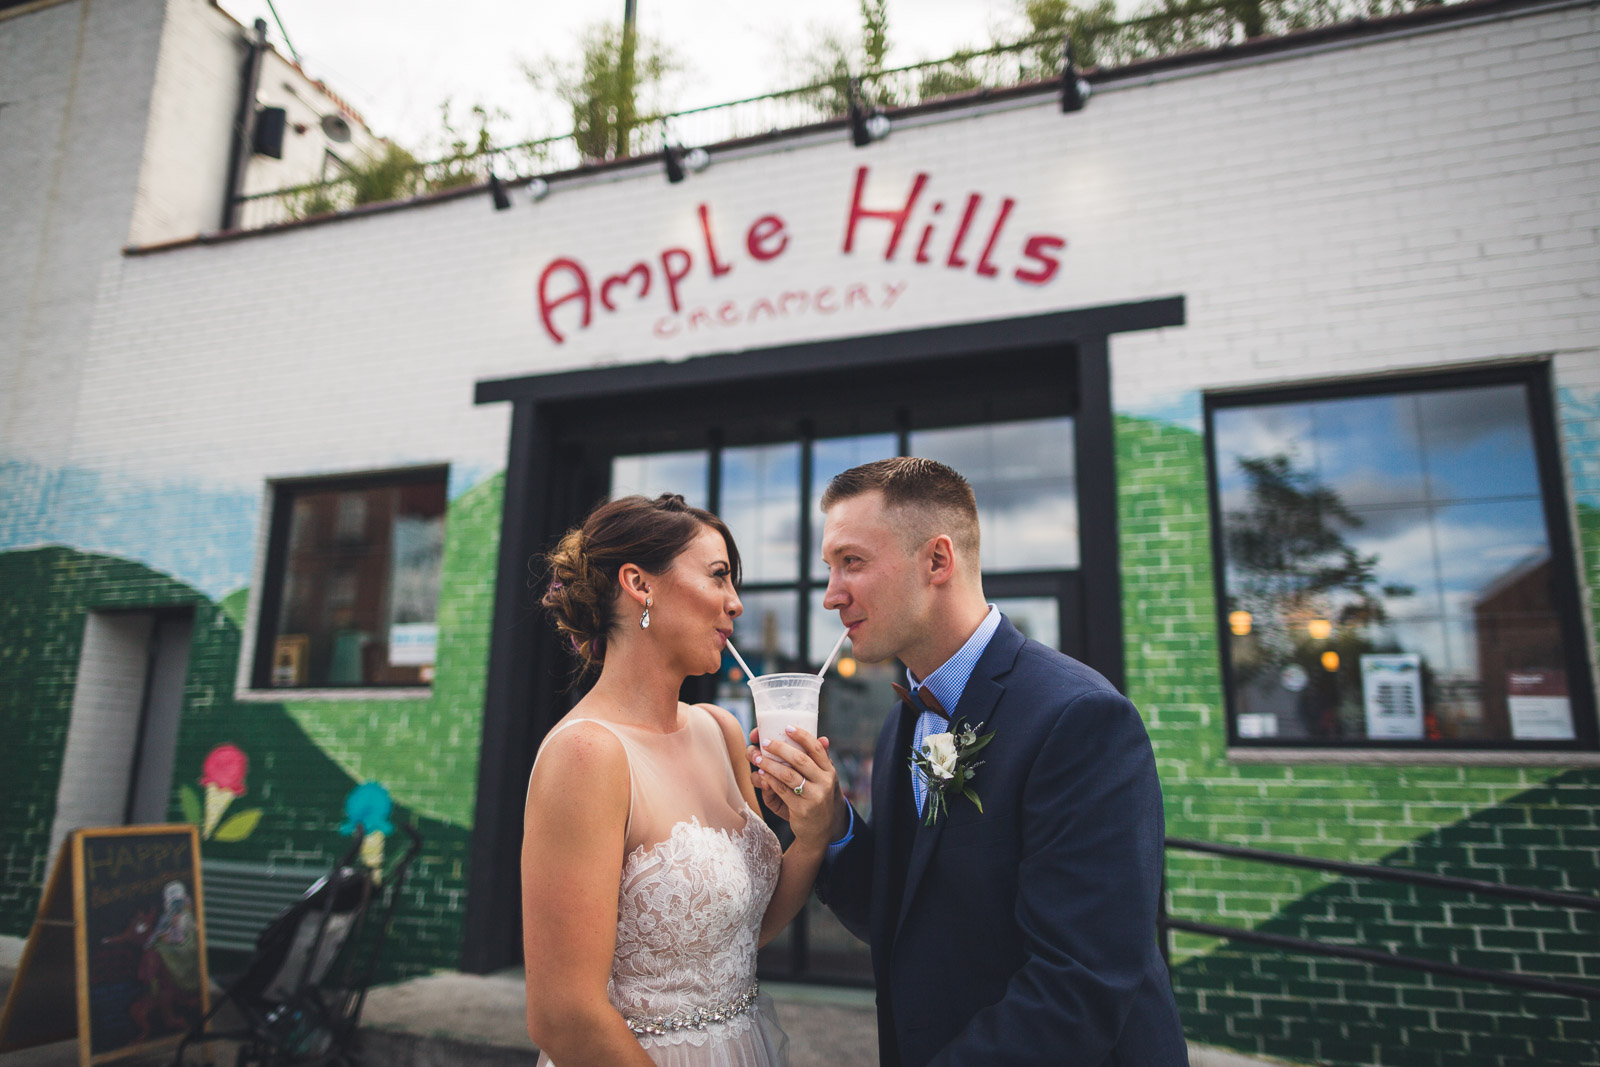 Ample Hills Ice Cream Brooklyn Wedding